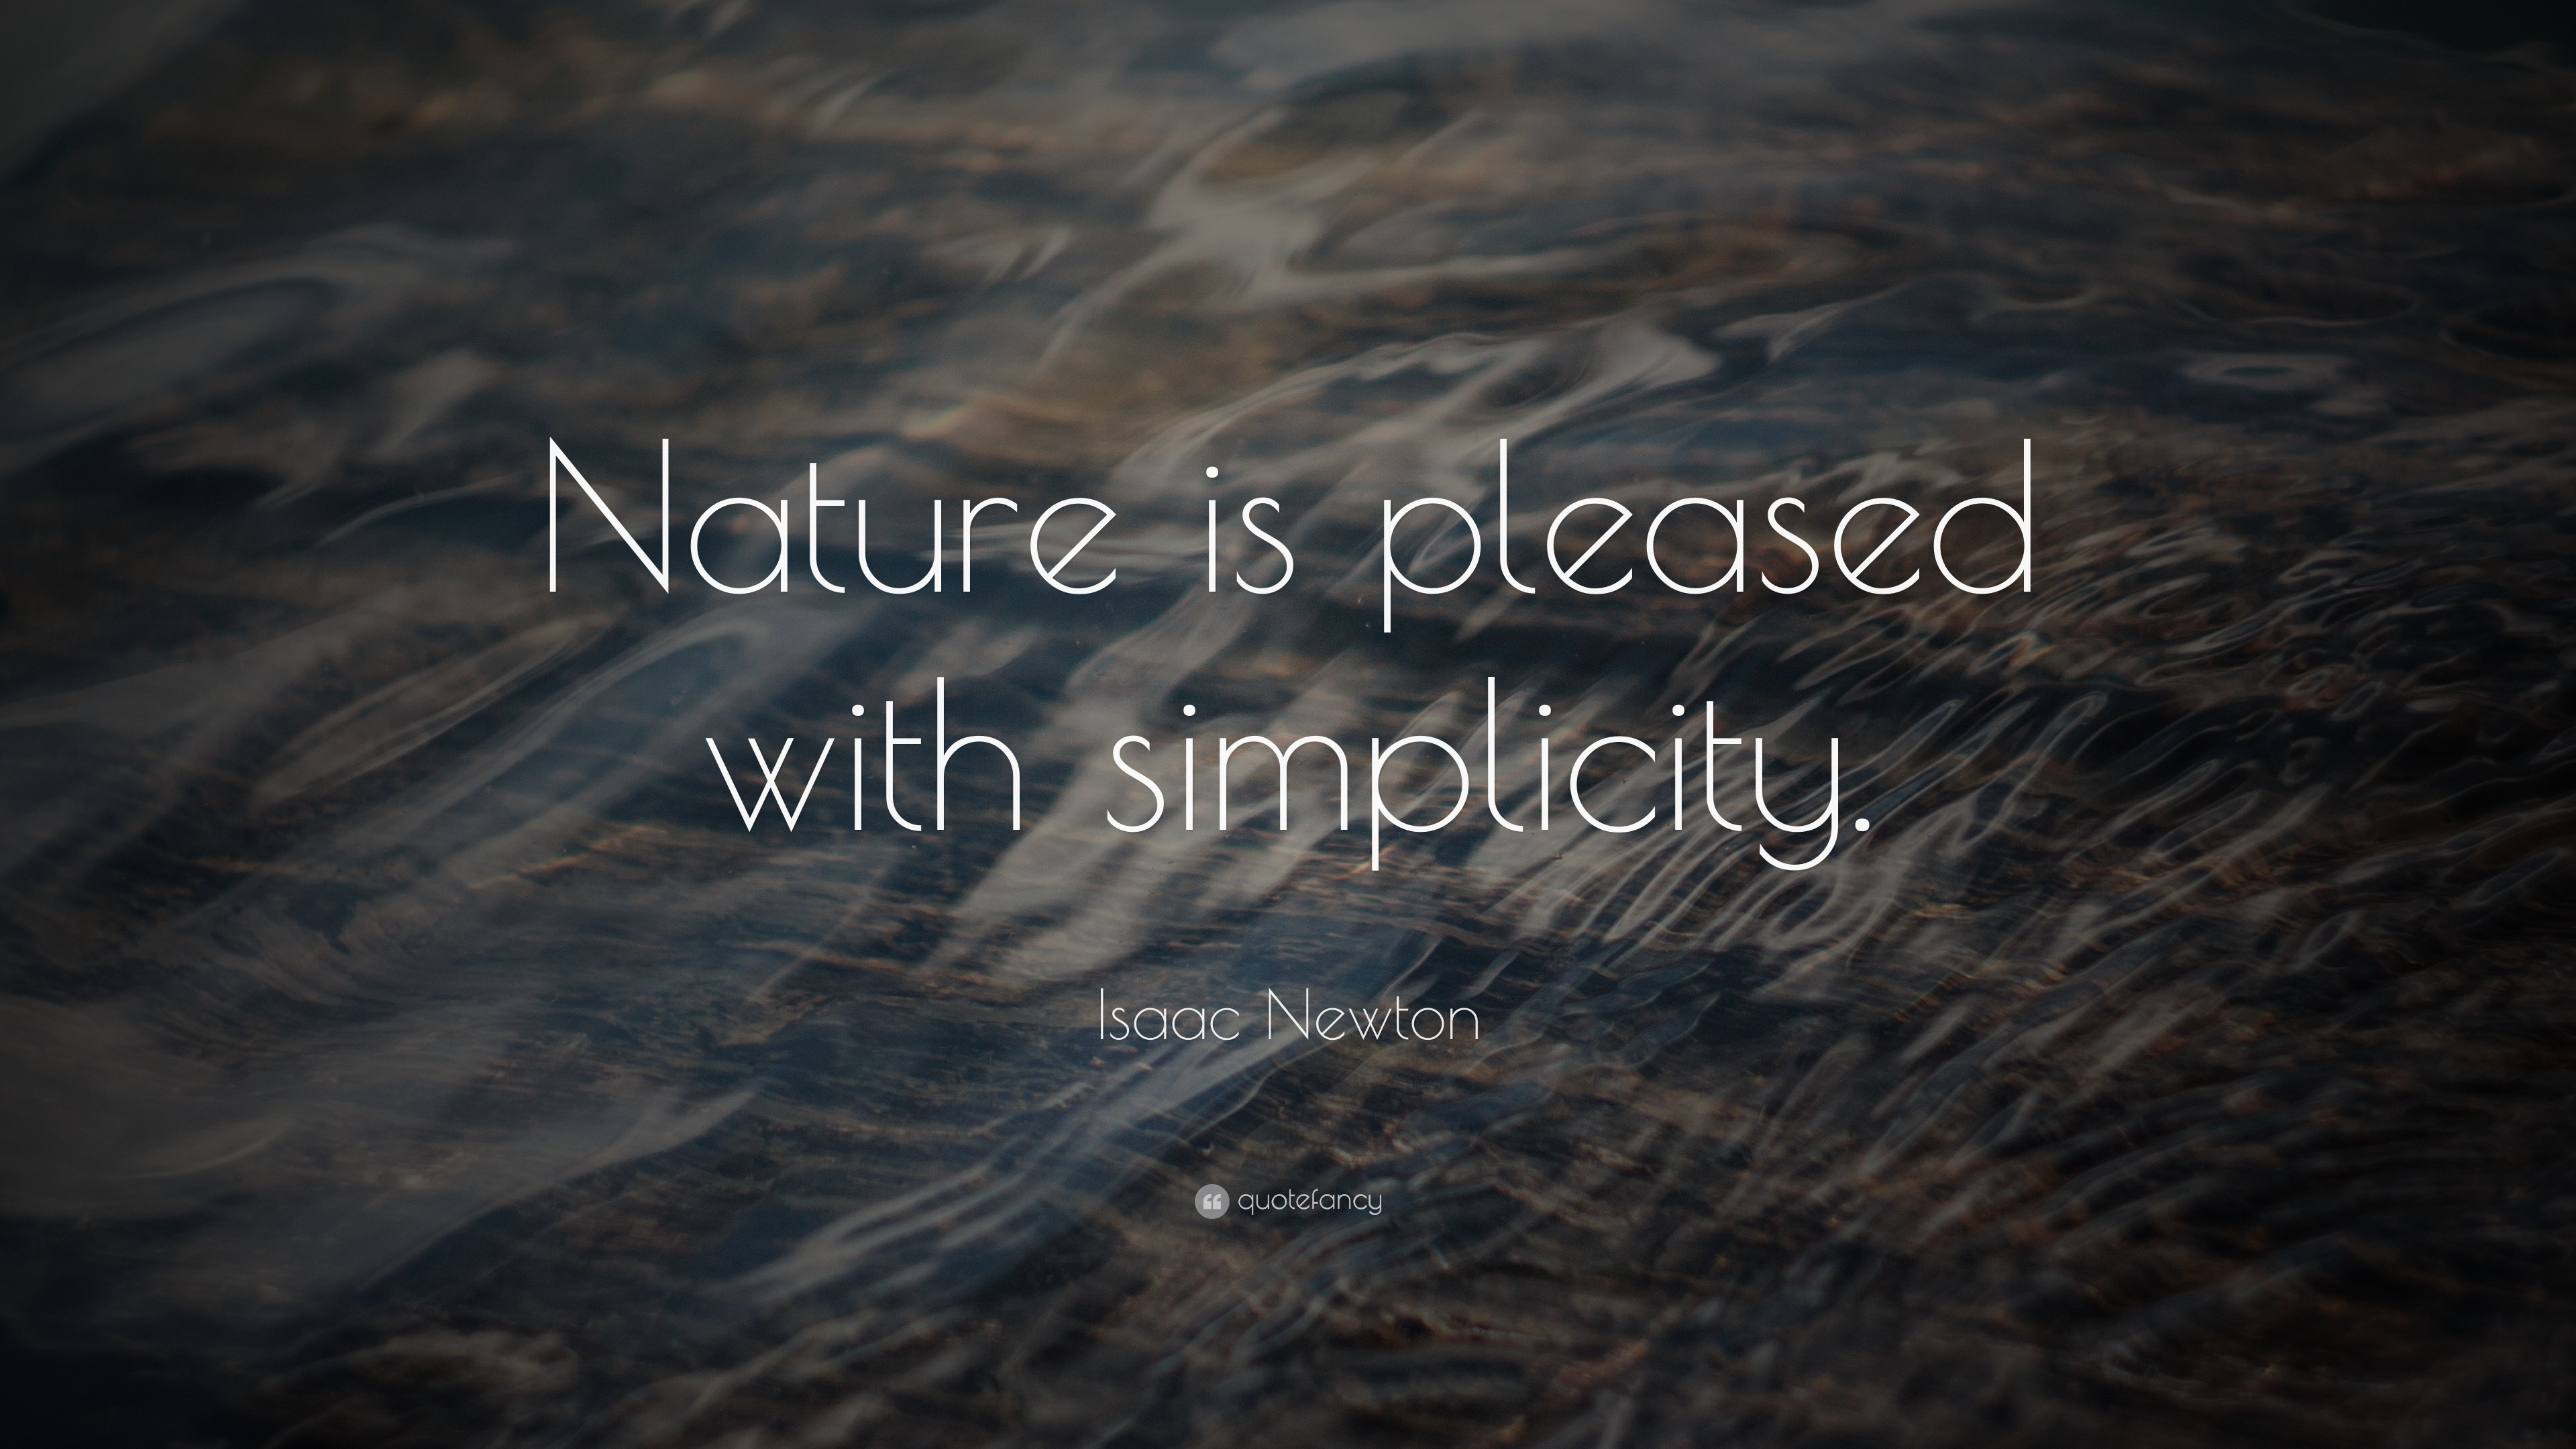 Images Of Nature Wallpaper With Quotes Isaac Newton Quote Nature Is Pleased With Simplicity